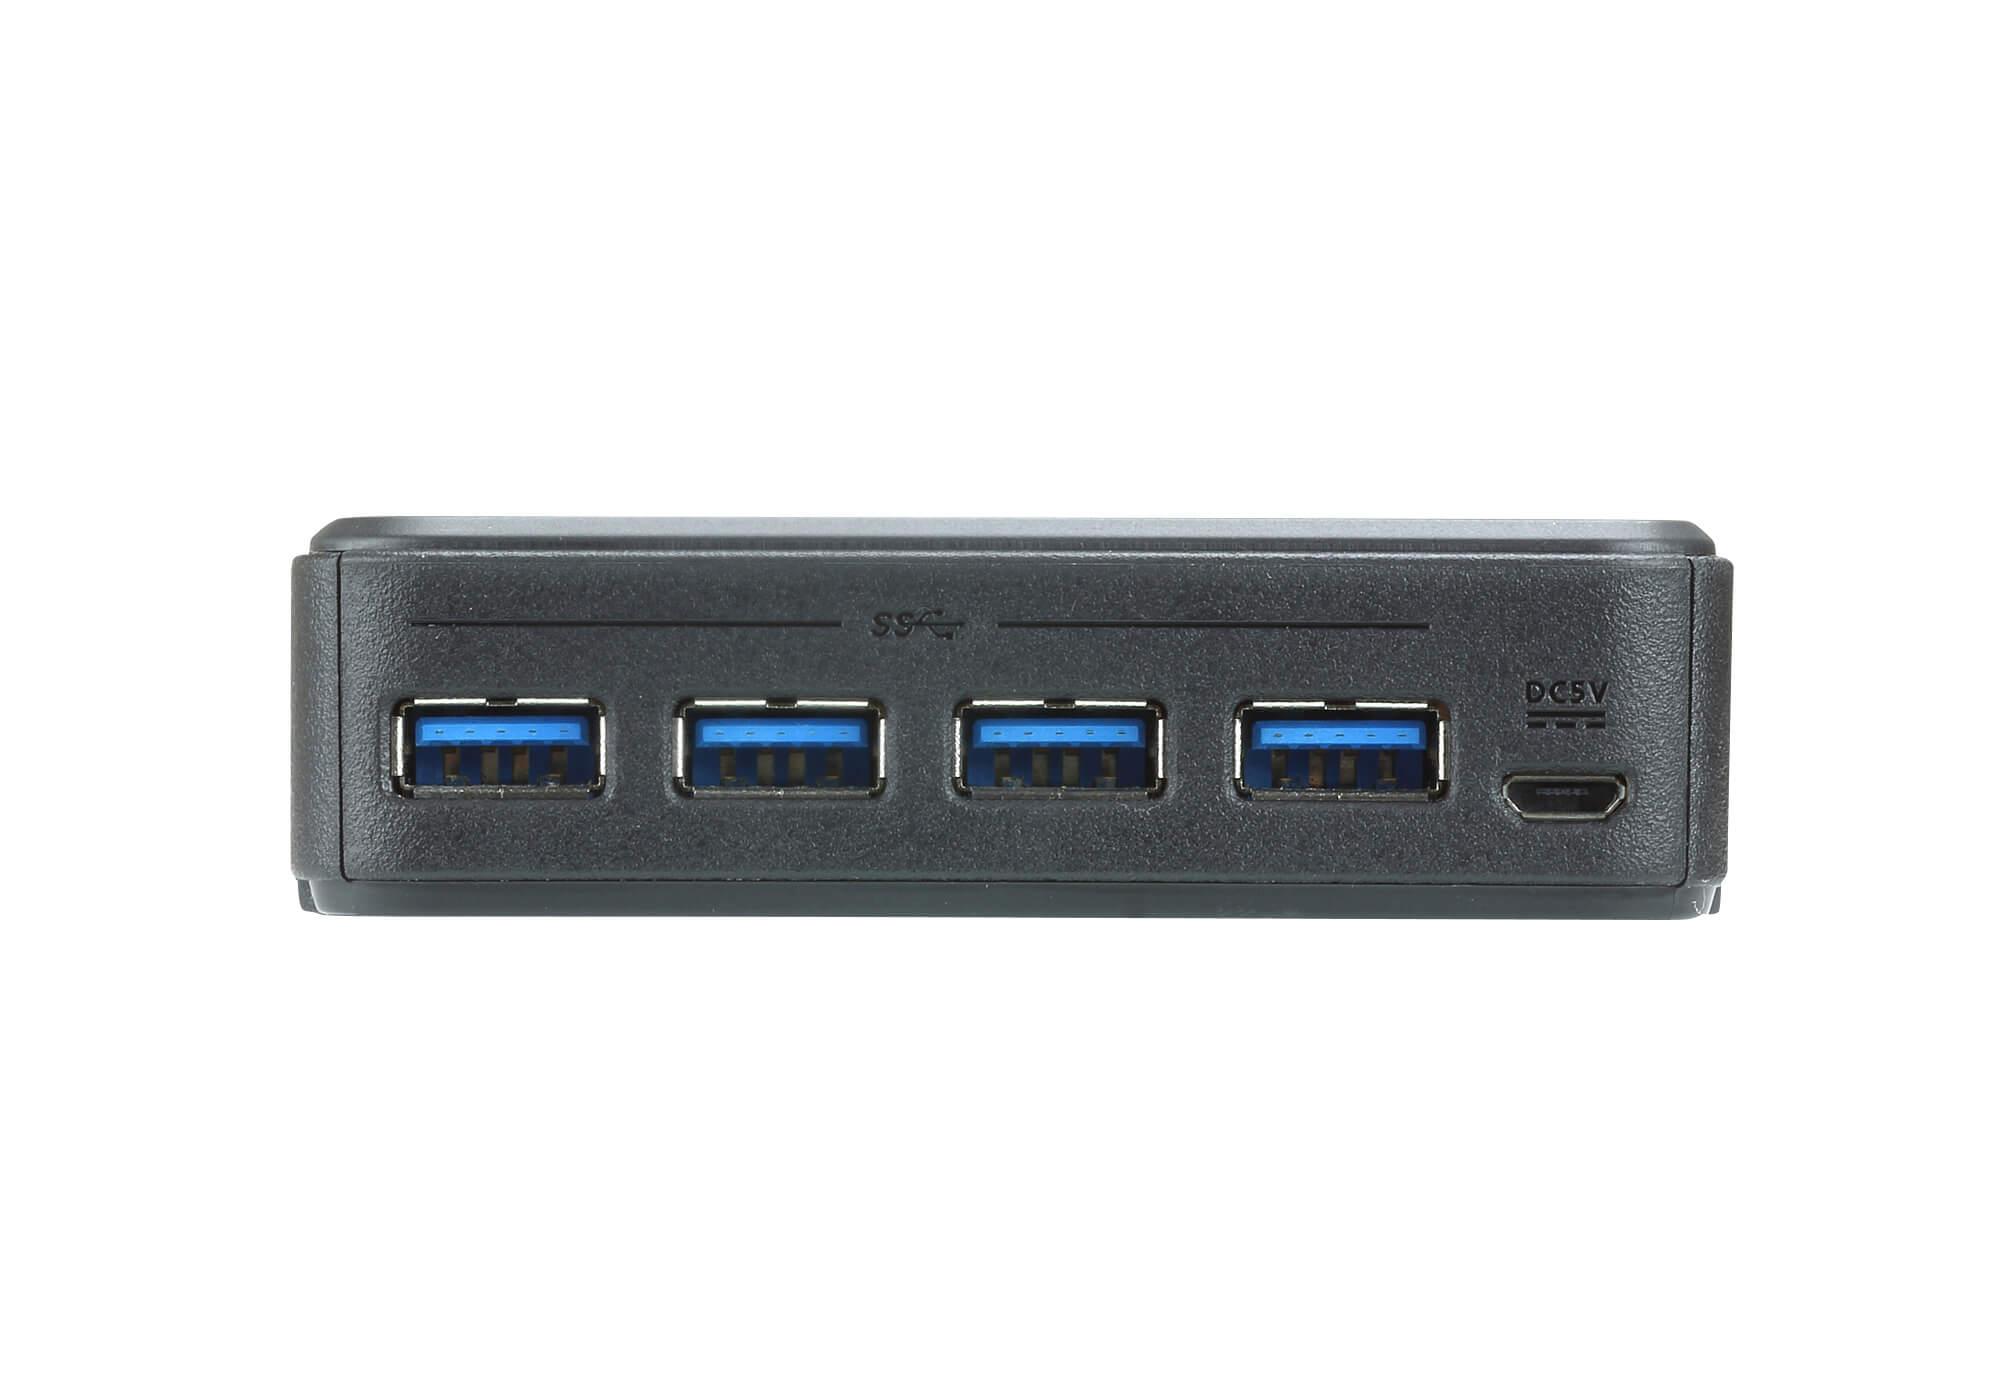 2 x 4 USB 3.2 Gen1 Peripherie-Freigabe-Switch-3